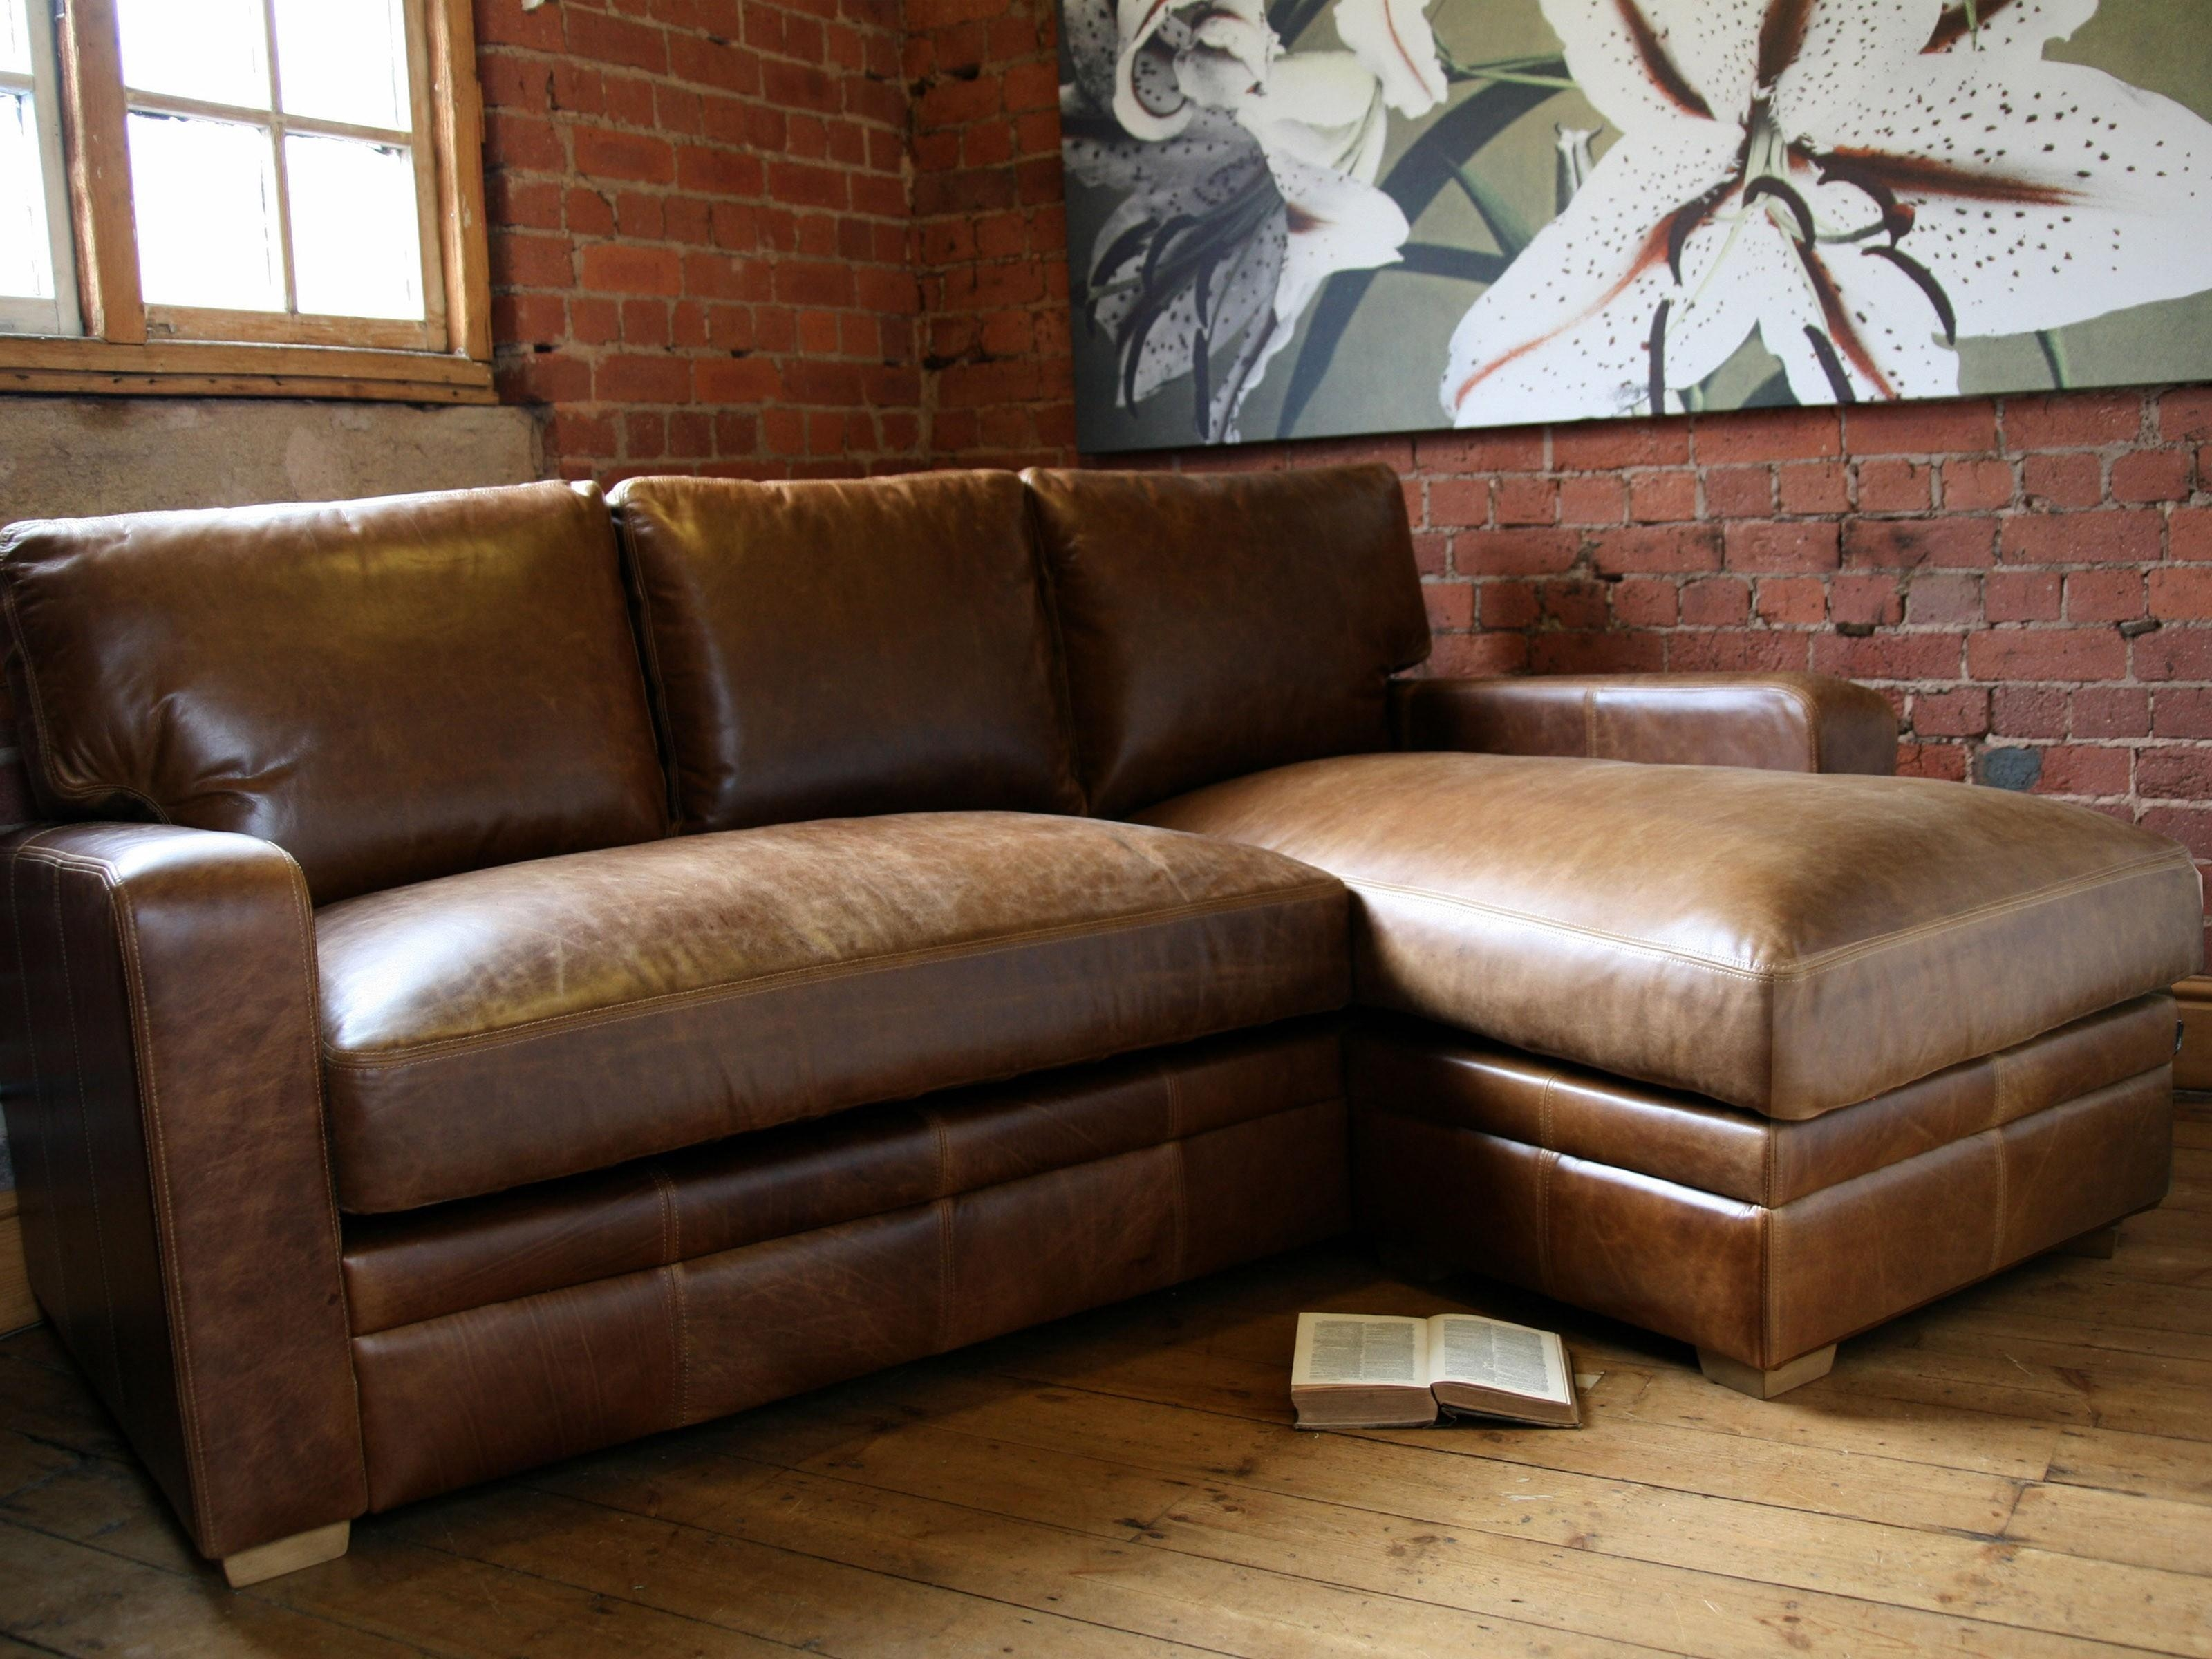 Small Sectional Sofa With Chaise Lounge | Sofa Gallery | Kengire With Regard To Small Sofas With Chaise Lounge (Image 12 of 20)